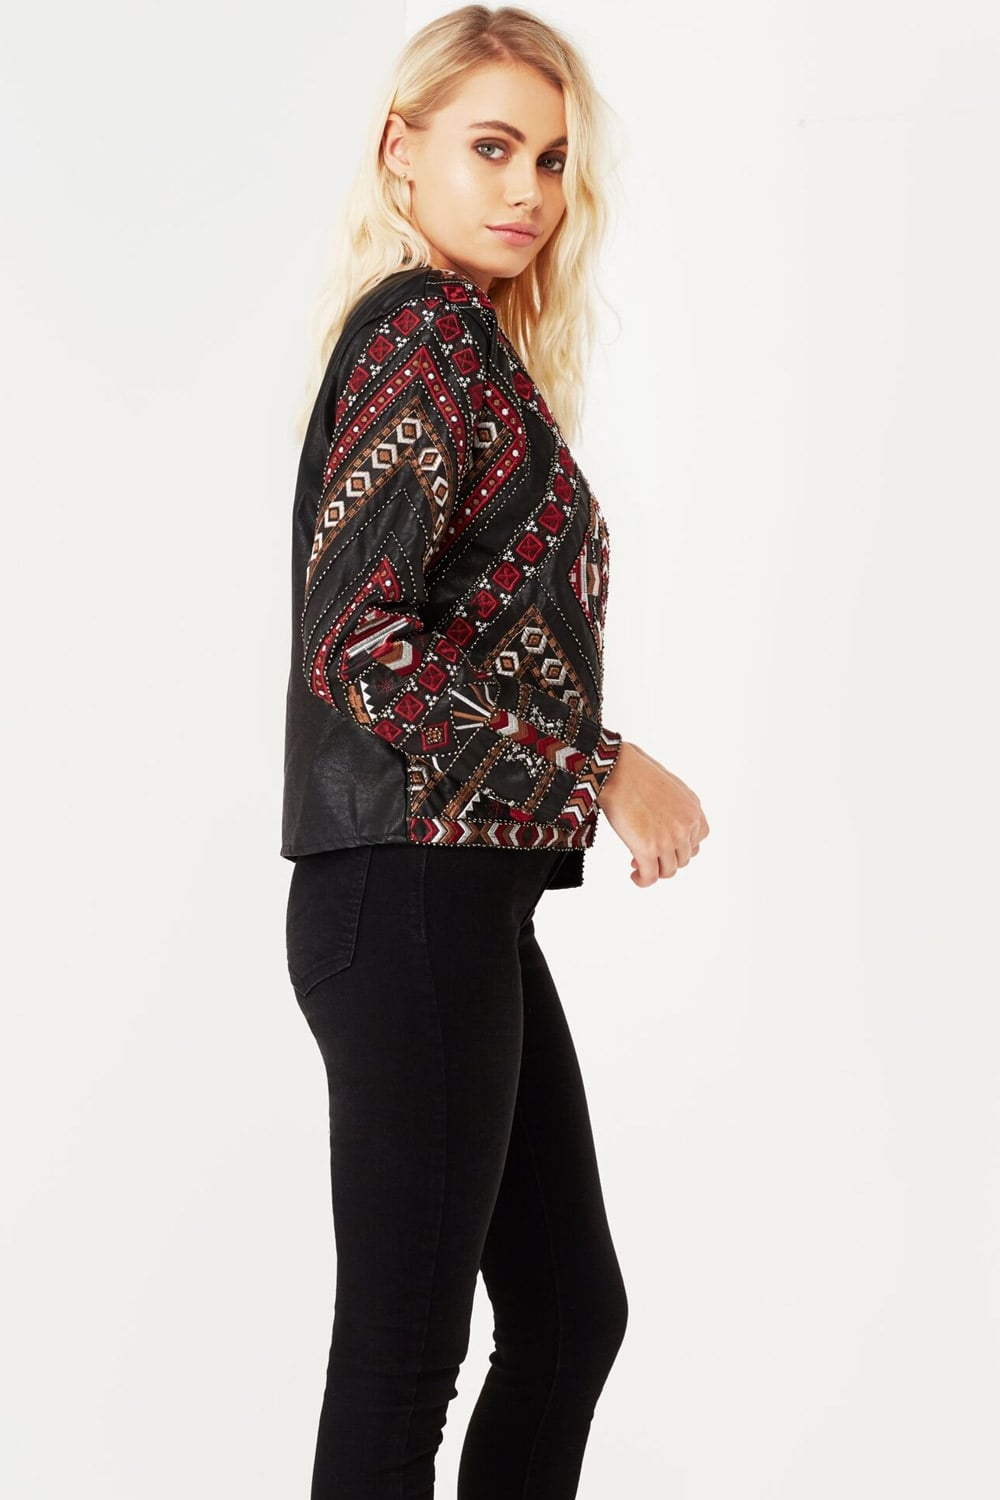 Outlet girls on film ethnic embroidered jacket with faux